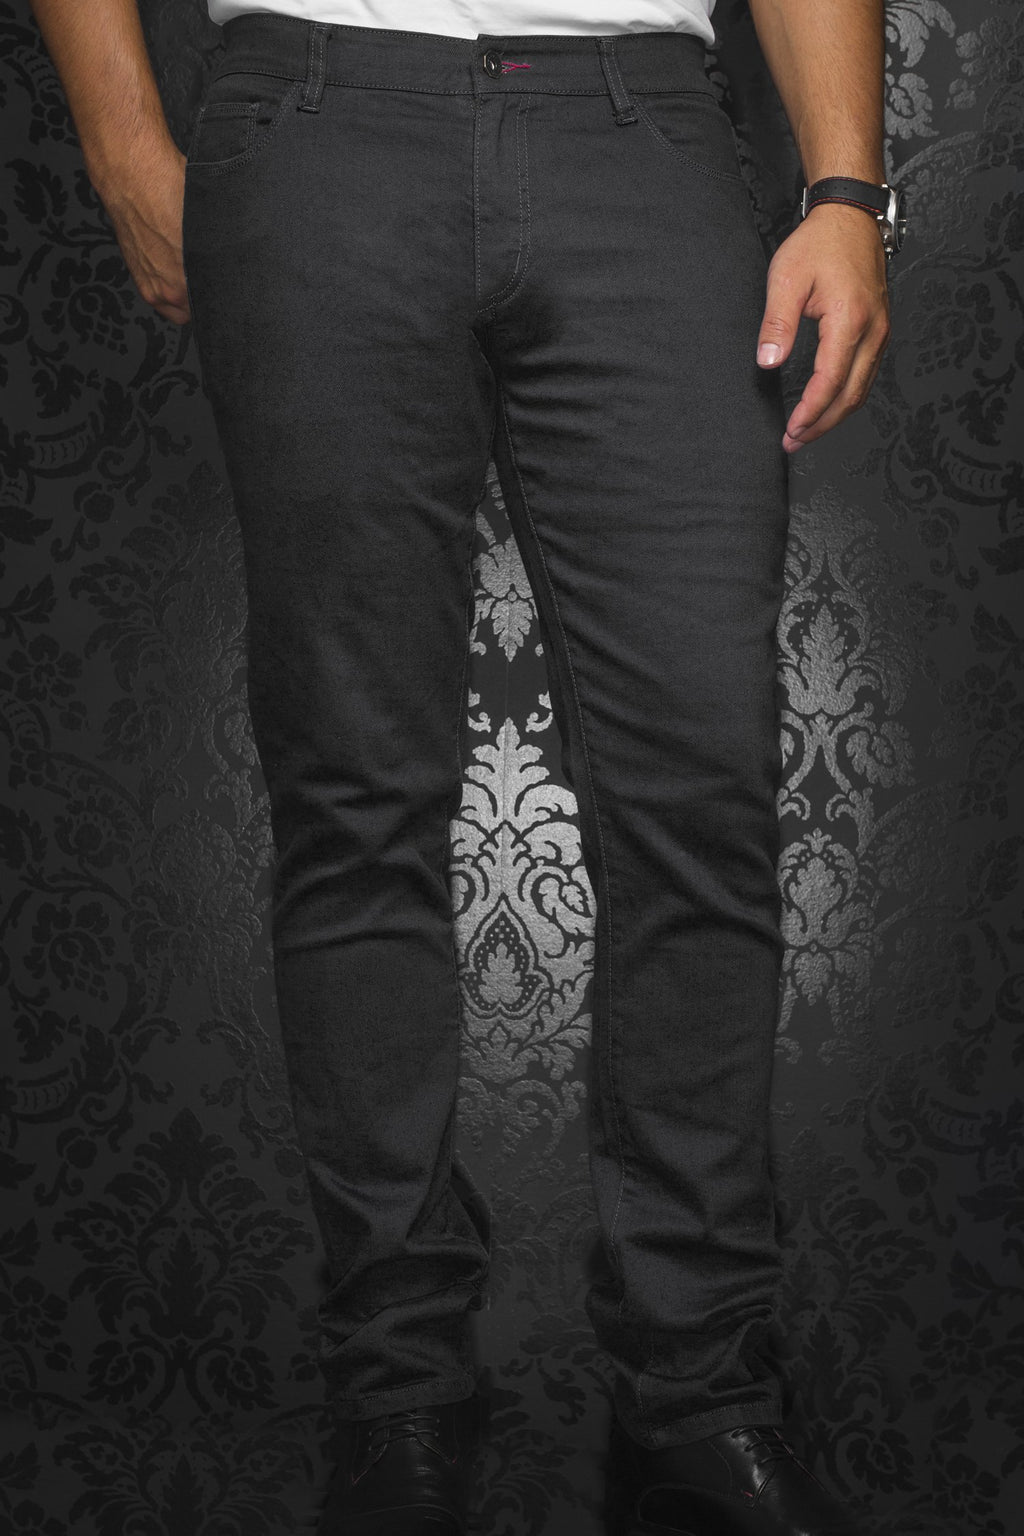 Au Noir Slim Fit Stretch Denim Jean - Black